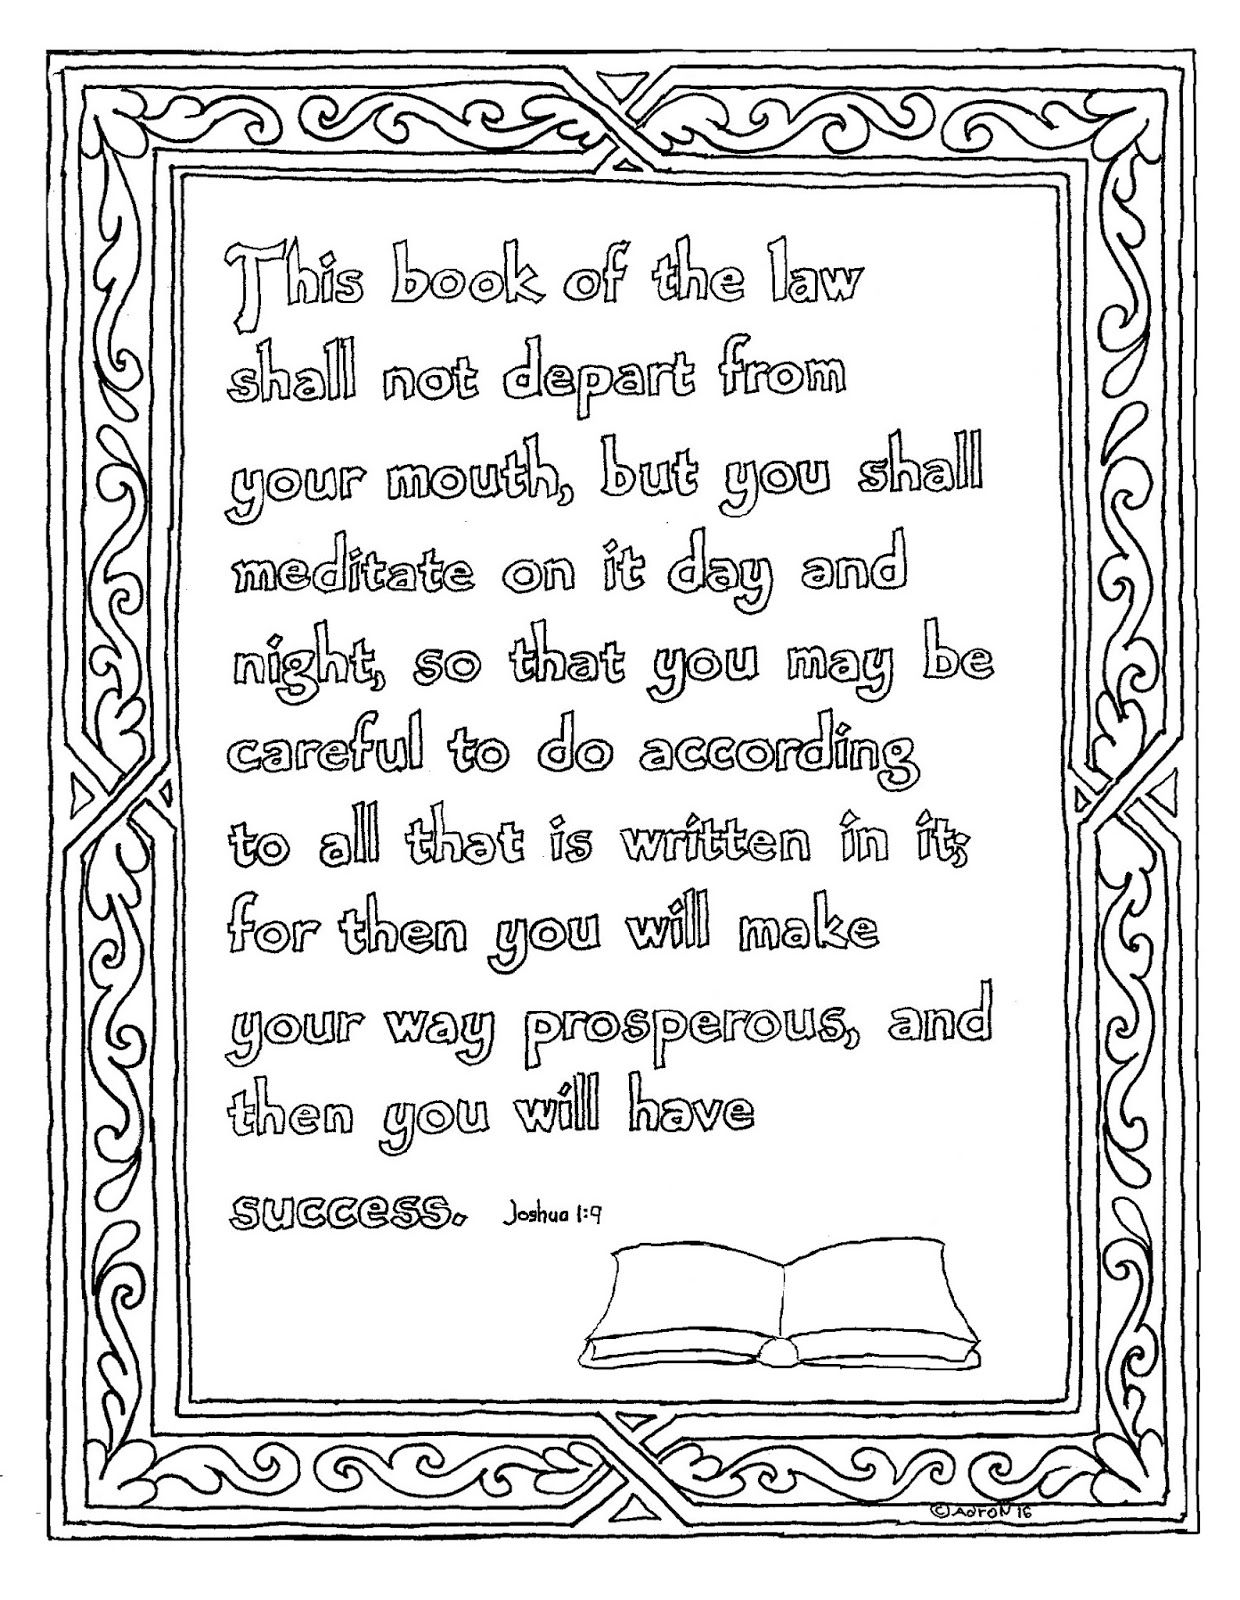 Joshua 1 8 Printable Bible Verse Coloring Page This